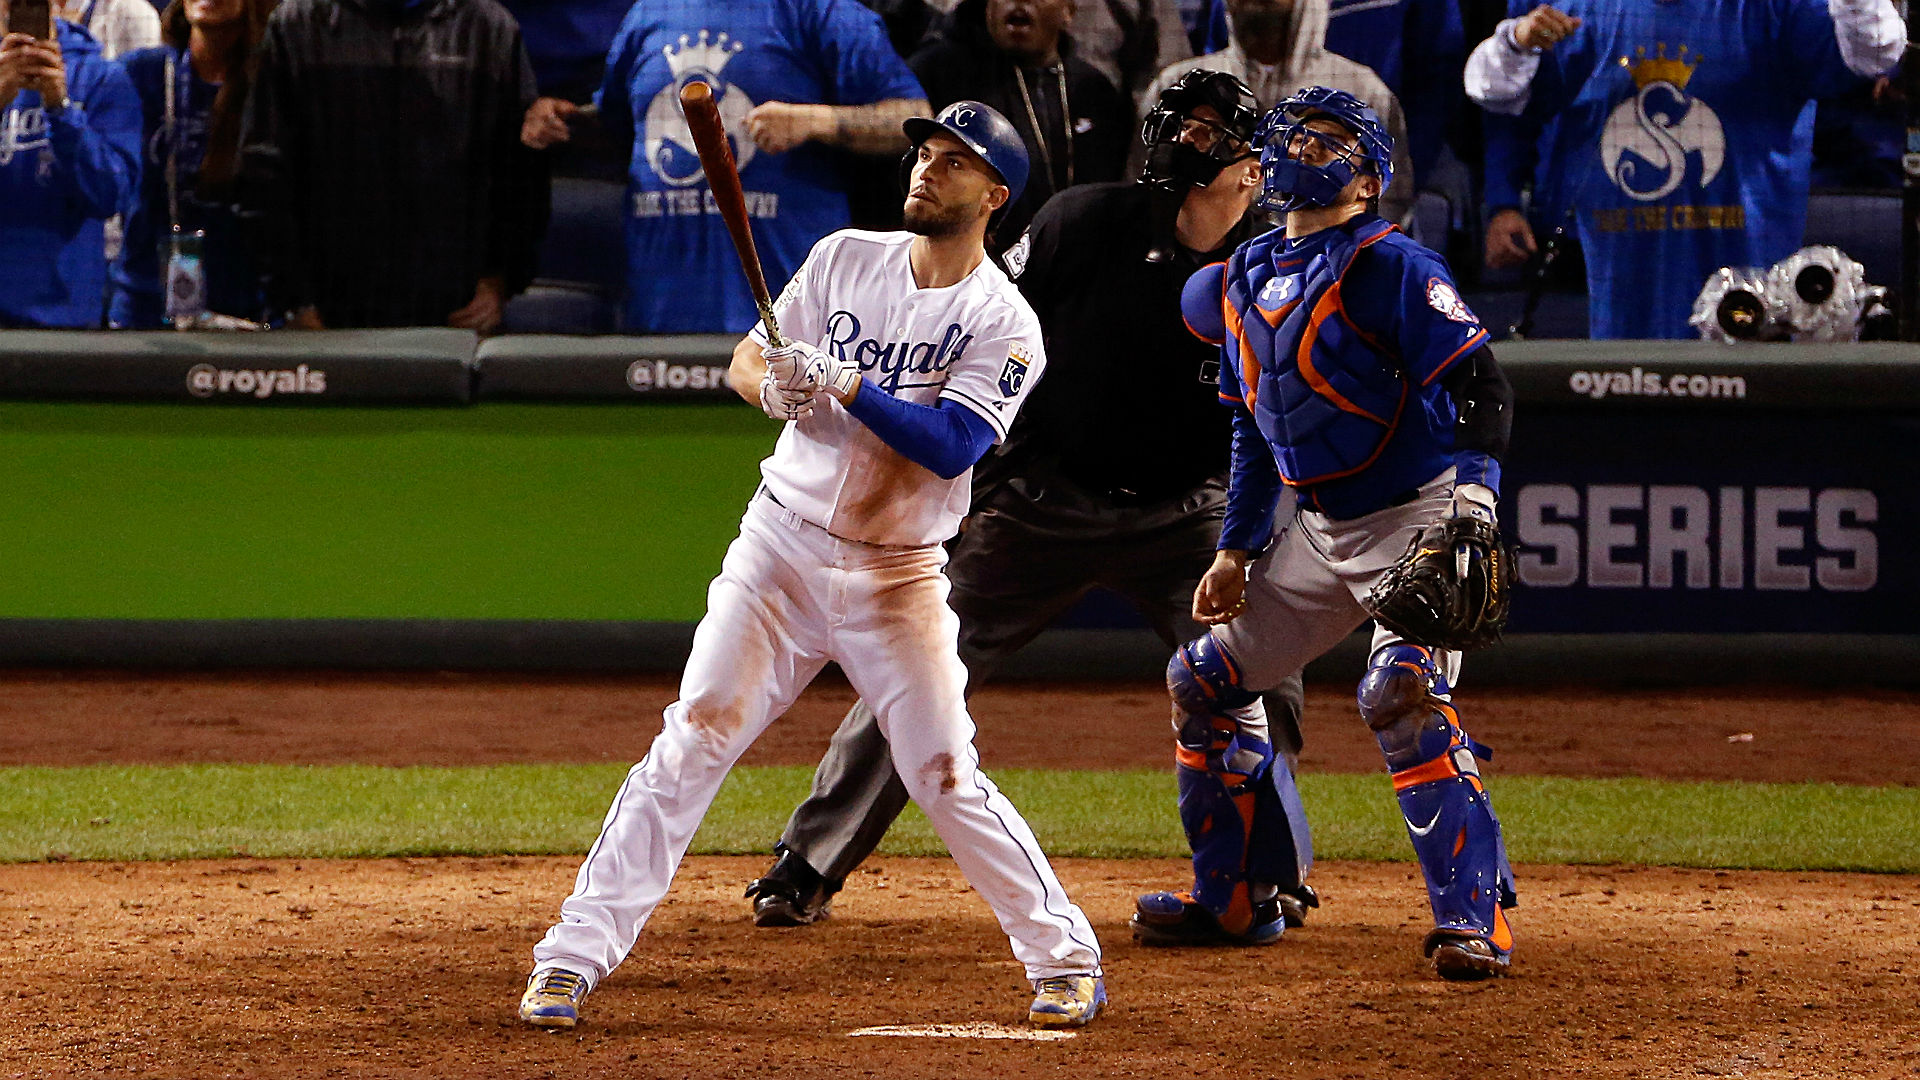 ​World Series Game 2 odds, props and pick – Mets chalk versus Royals in Game 2